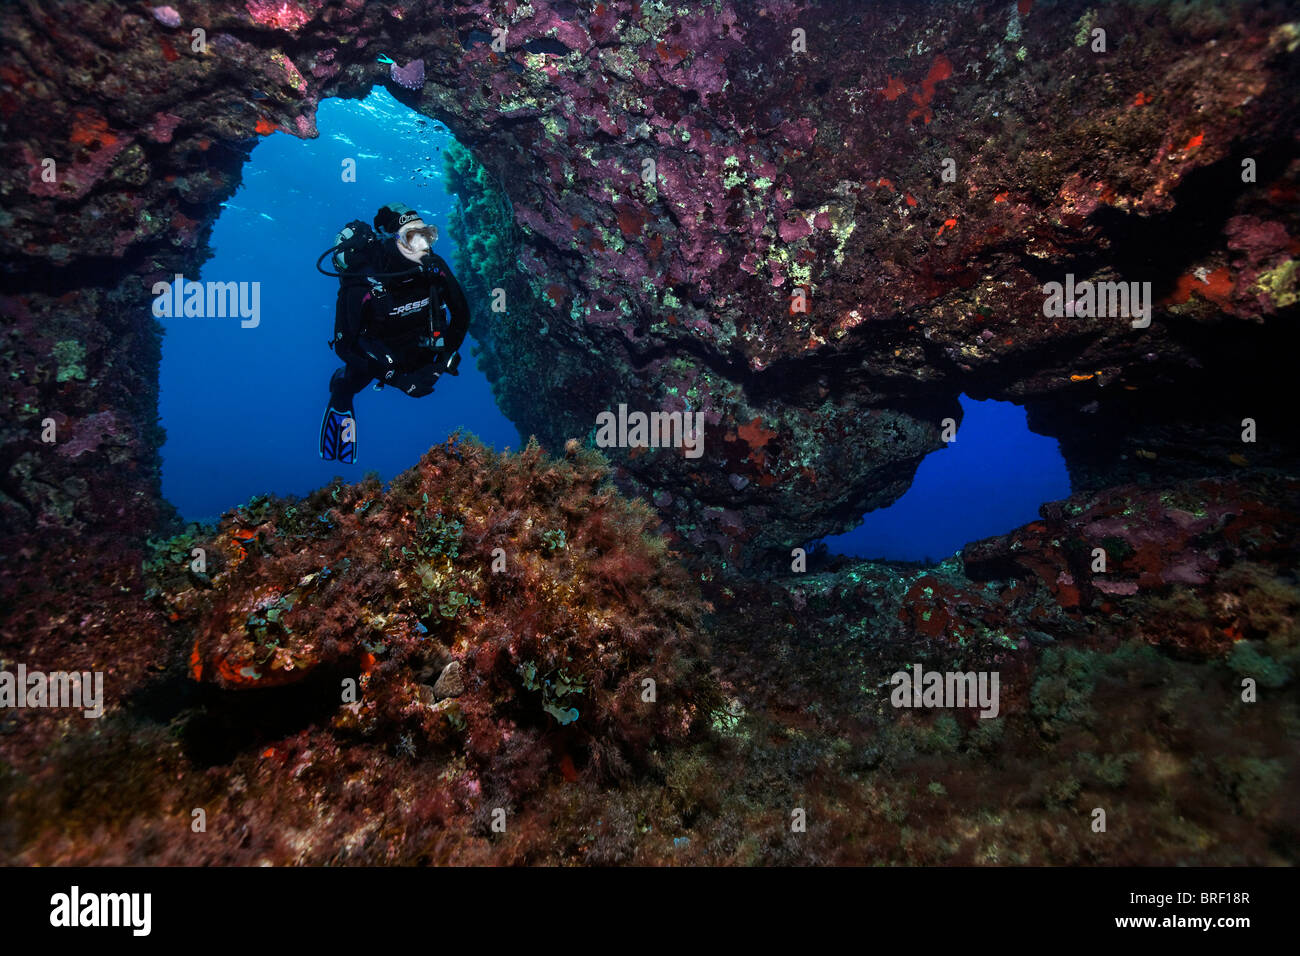 Scuba diver diving through a cave overcrusted with invertebrates, Cyprus, Asia, Mediterranean Sea - Stock Image